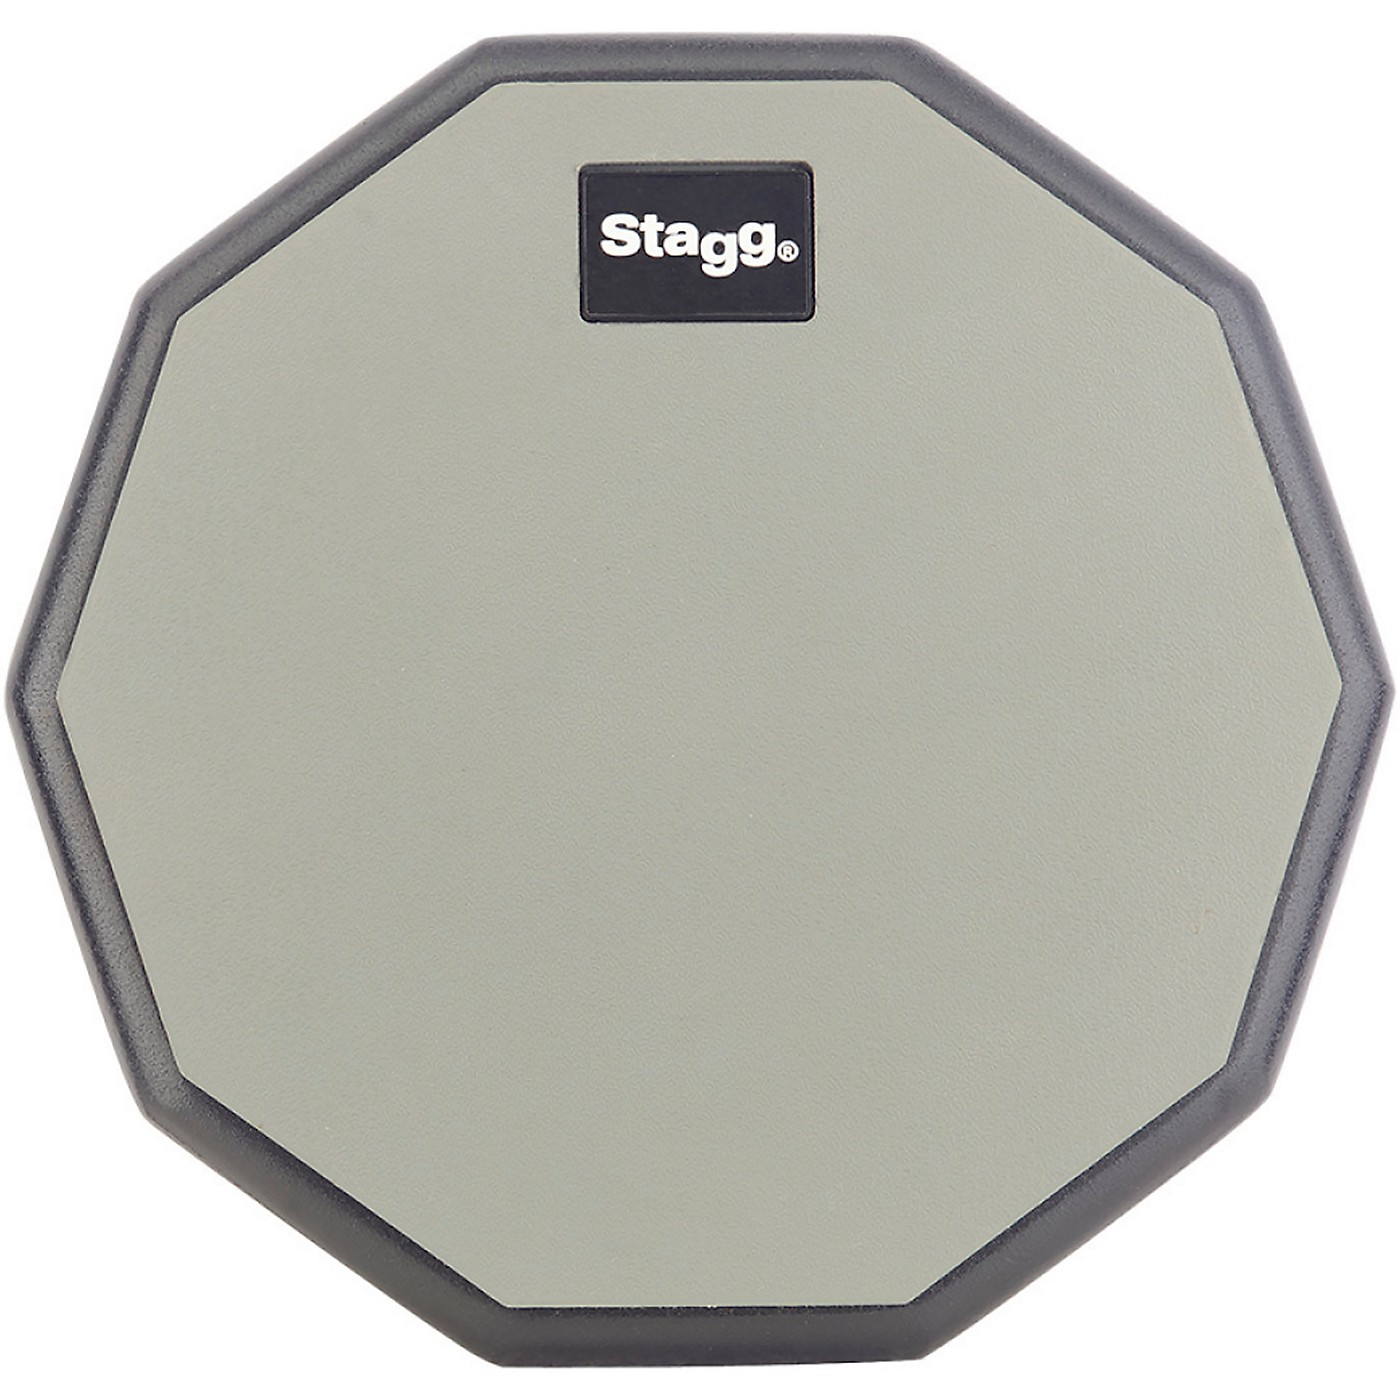 Stagg Practice Pad thumbnail